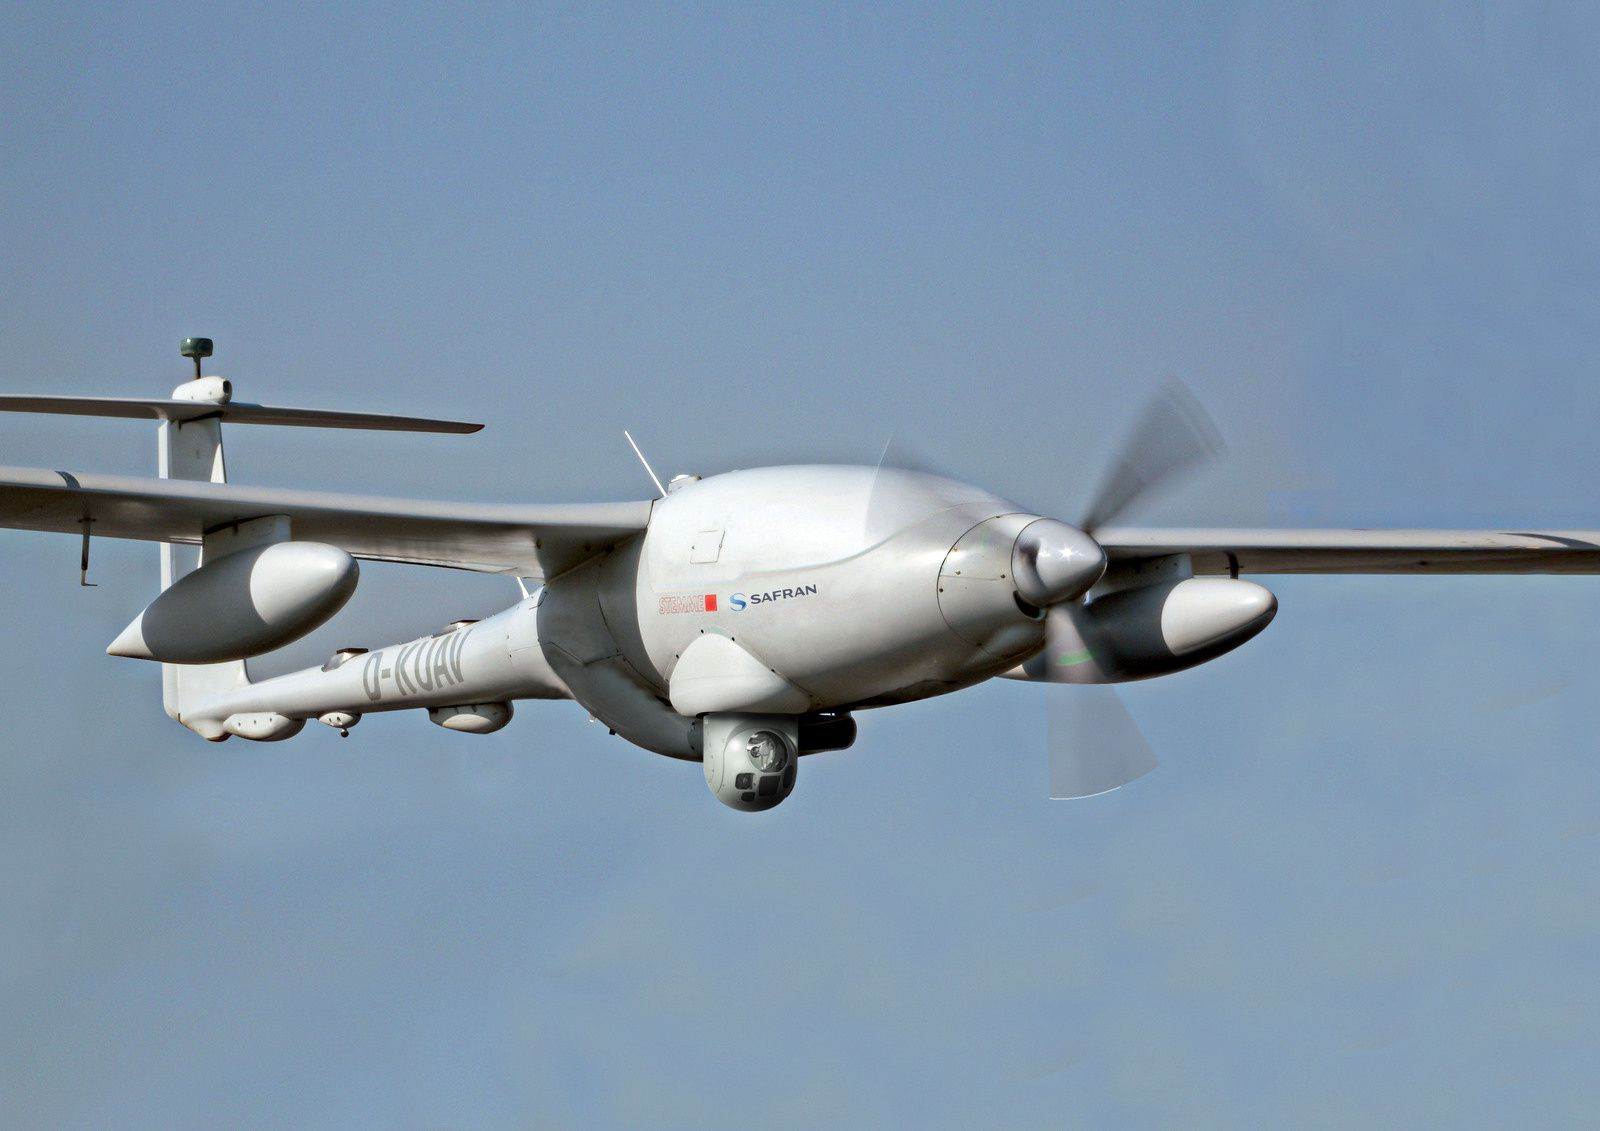 Safran plays major role in OCEAN2020 project, chosen by European Commission for the PADR defense research program